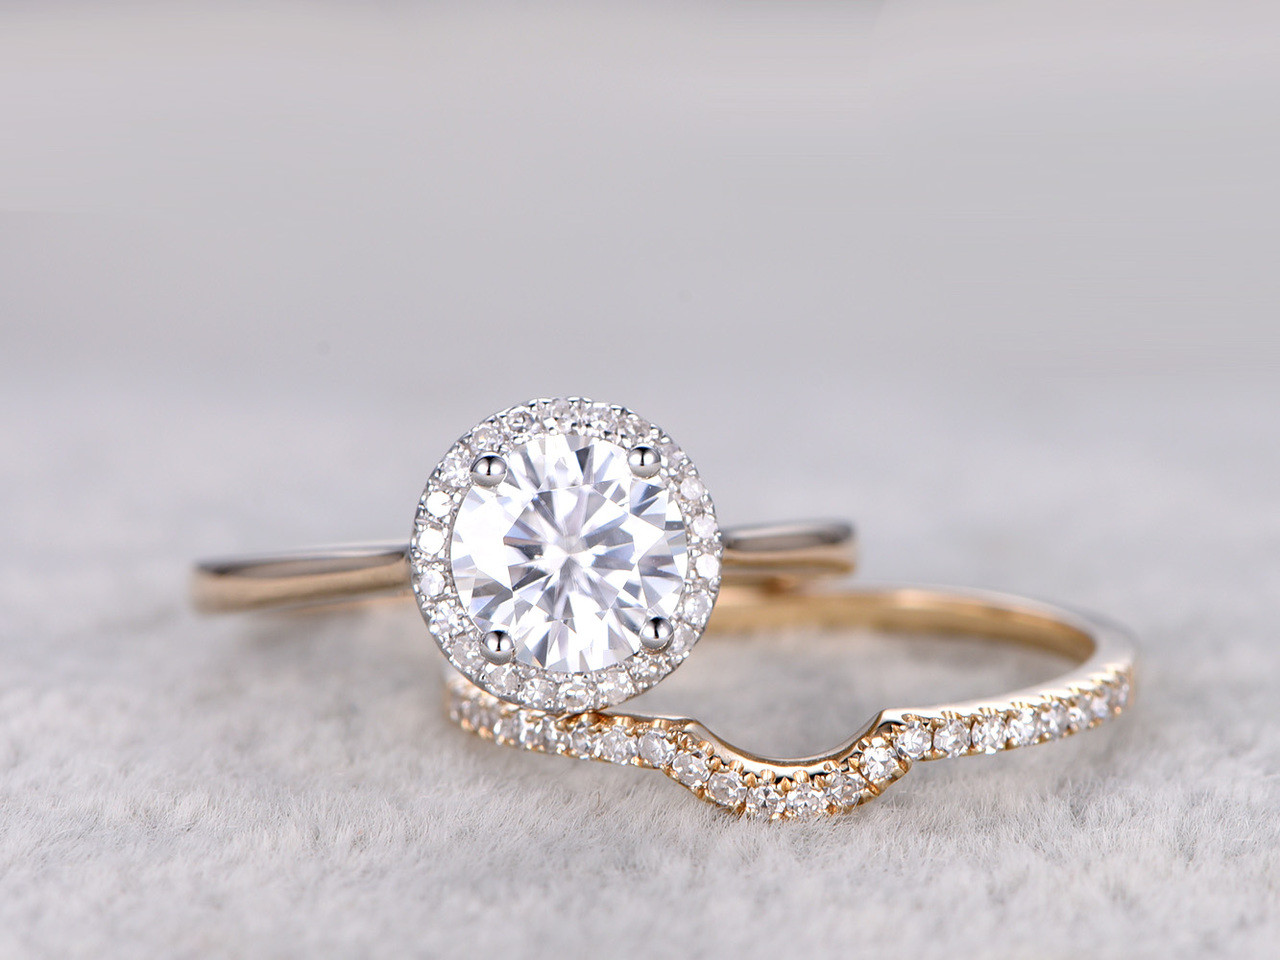 Moissanite engagement ring set Diamond Wedding Bands Two Tone Gold